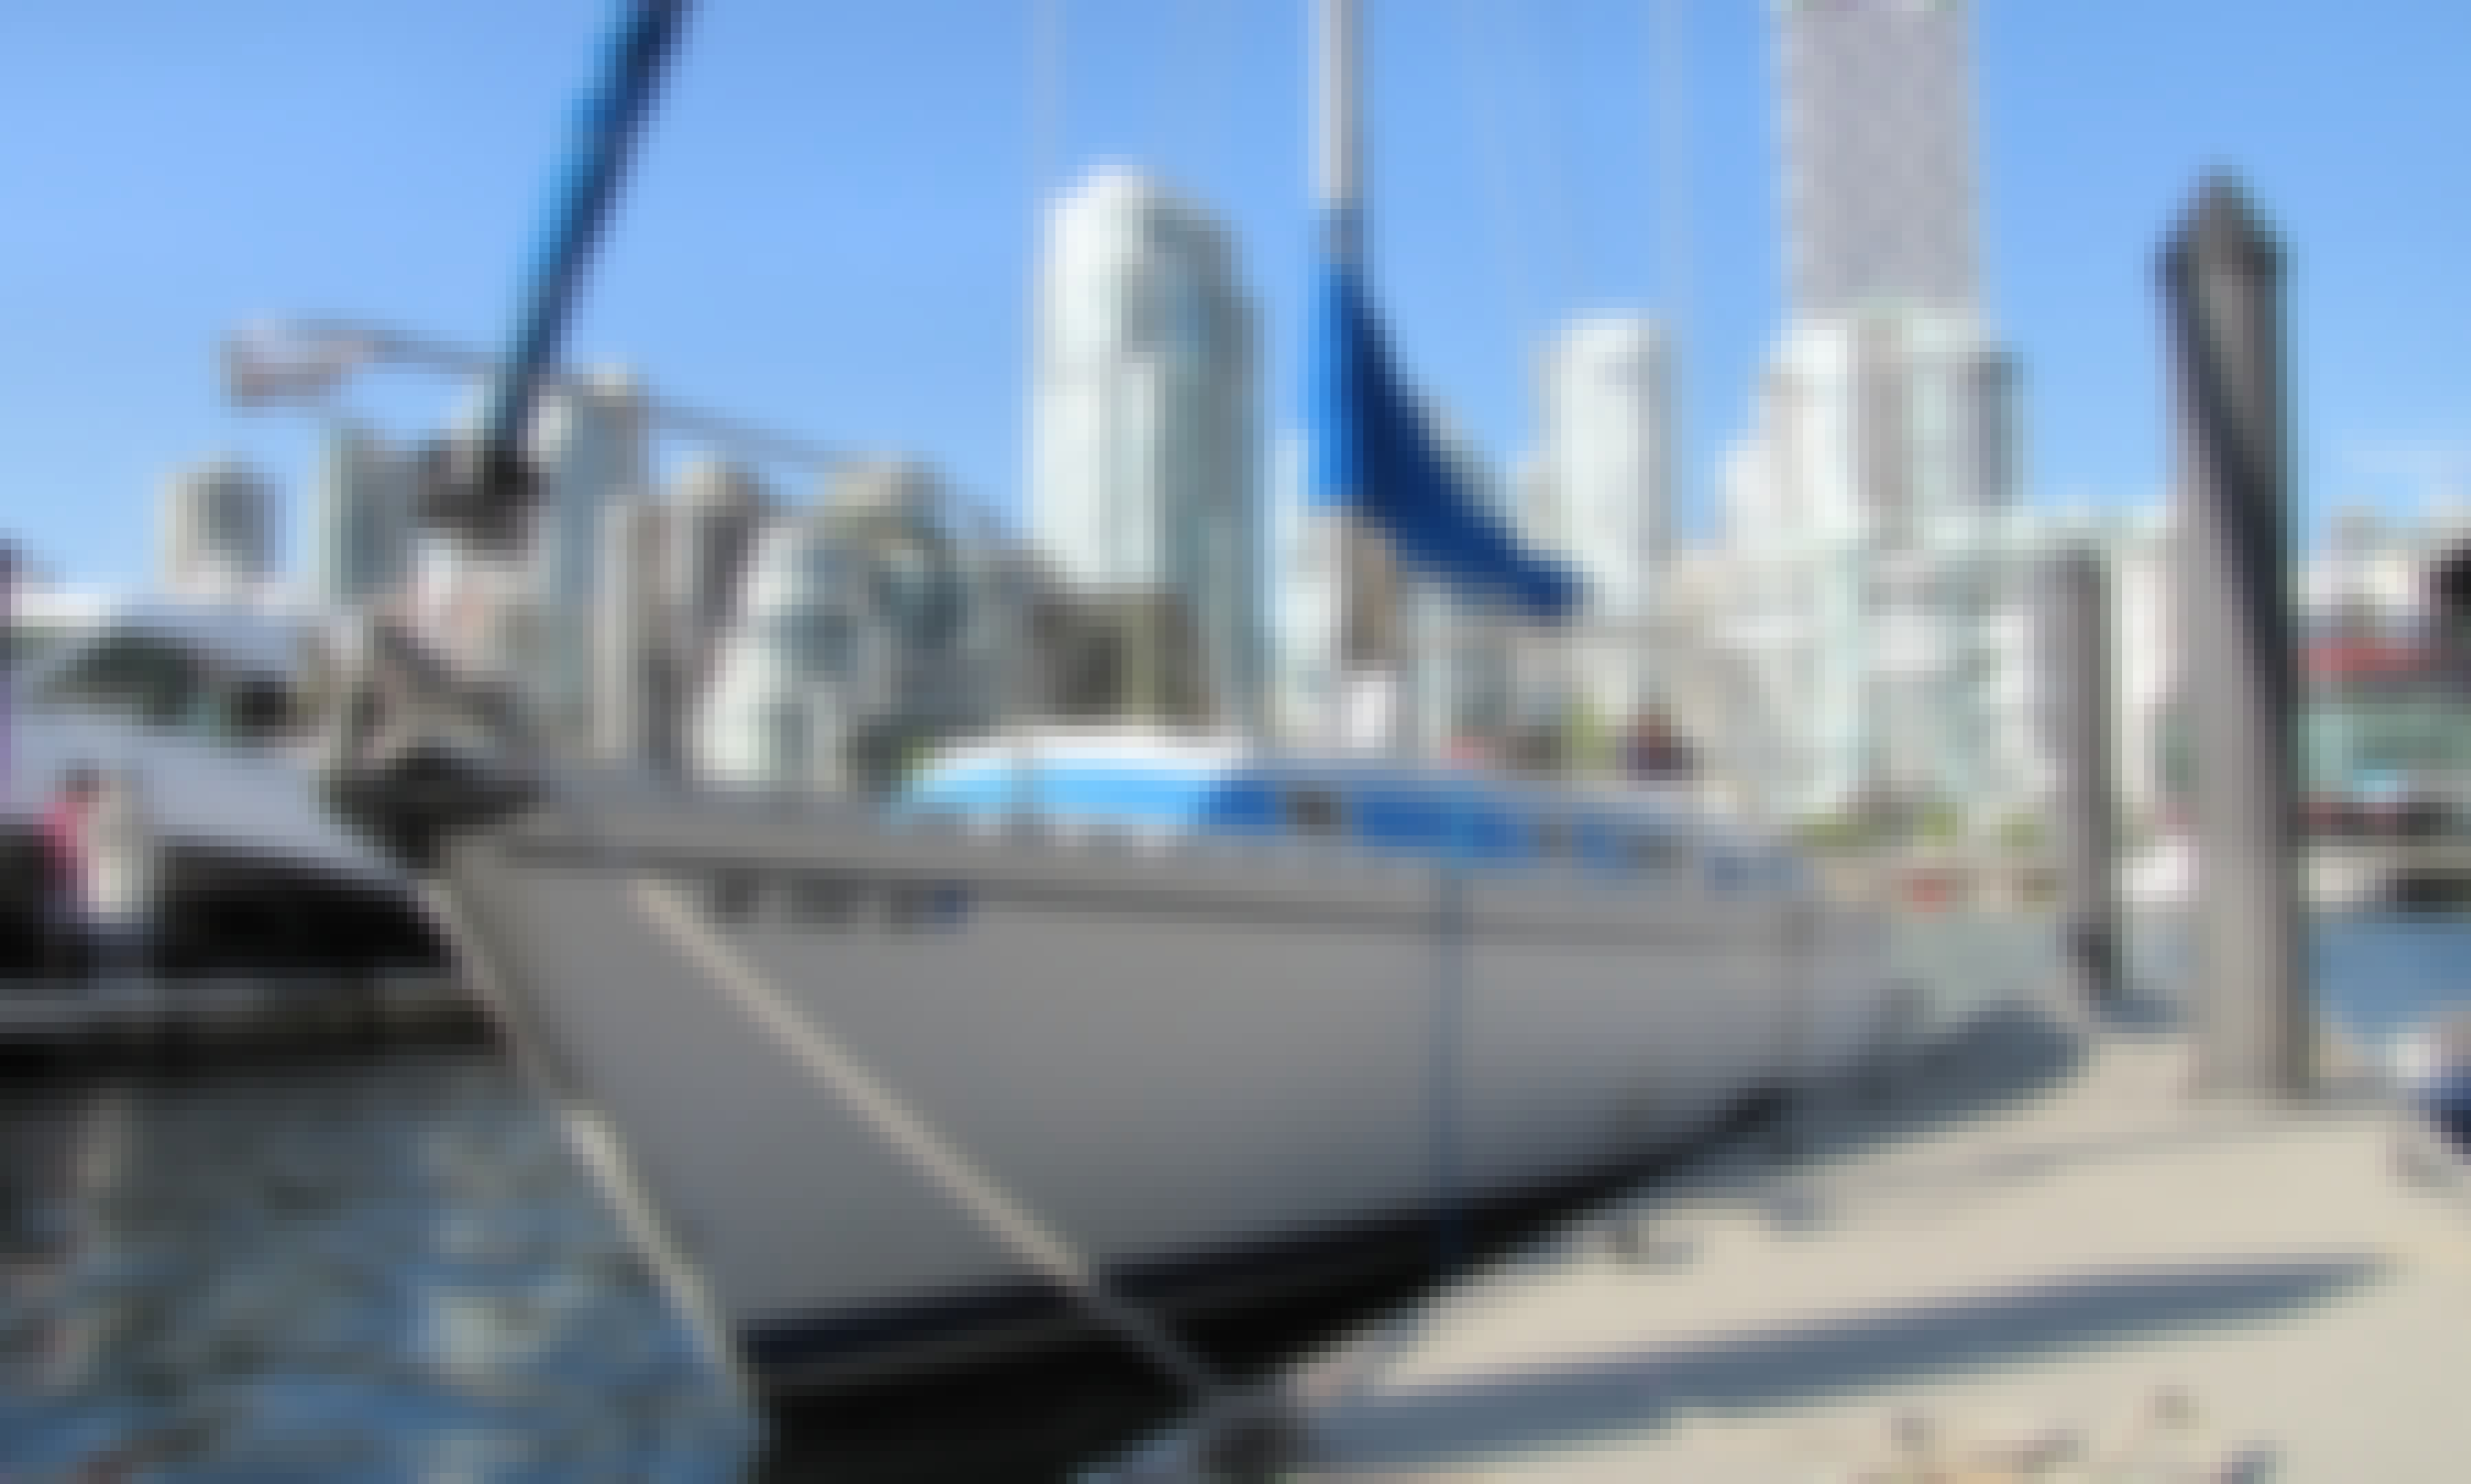 43' Beneteau Idylle Sailboat Charter for 6 People in Vancouver, Canada